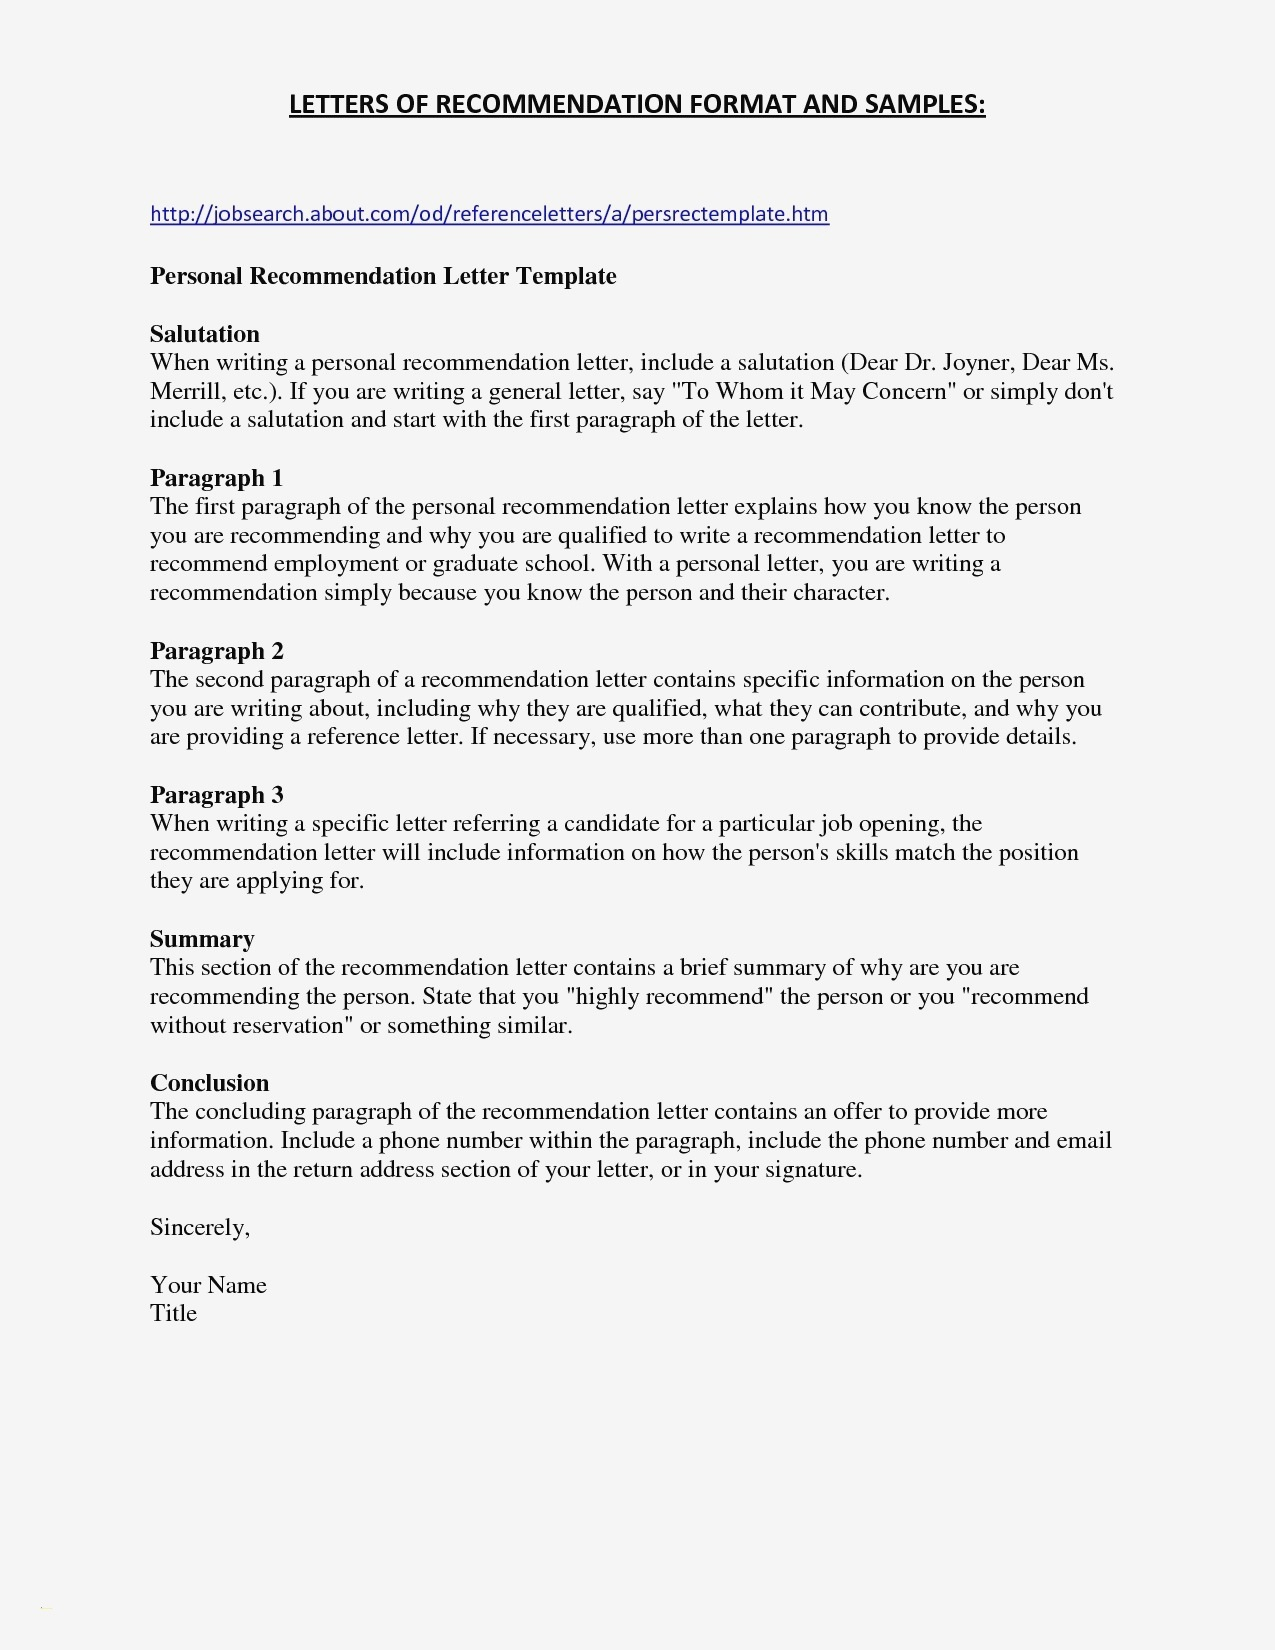 Mba Resume Examples - Mba Application Resume Template New the Proper Harvard Business